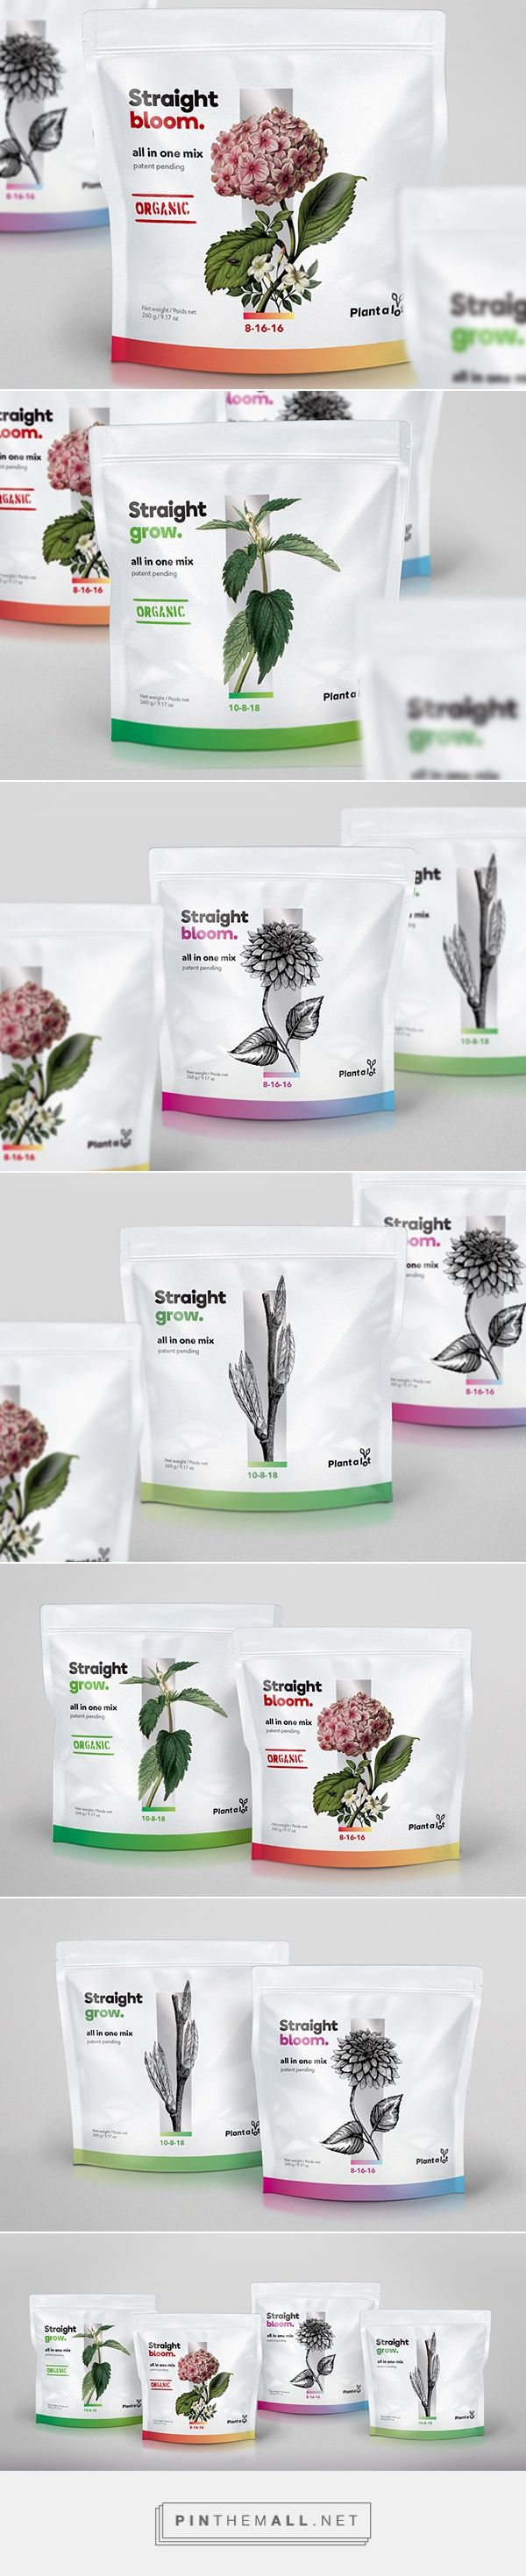 Plant a lot fertilizers by Counterpounch Design. Pin curated by #SFields99 #packaging #design